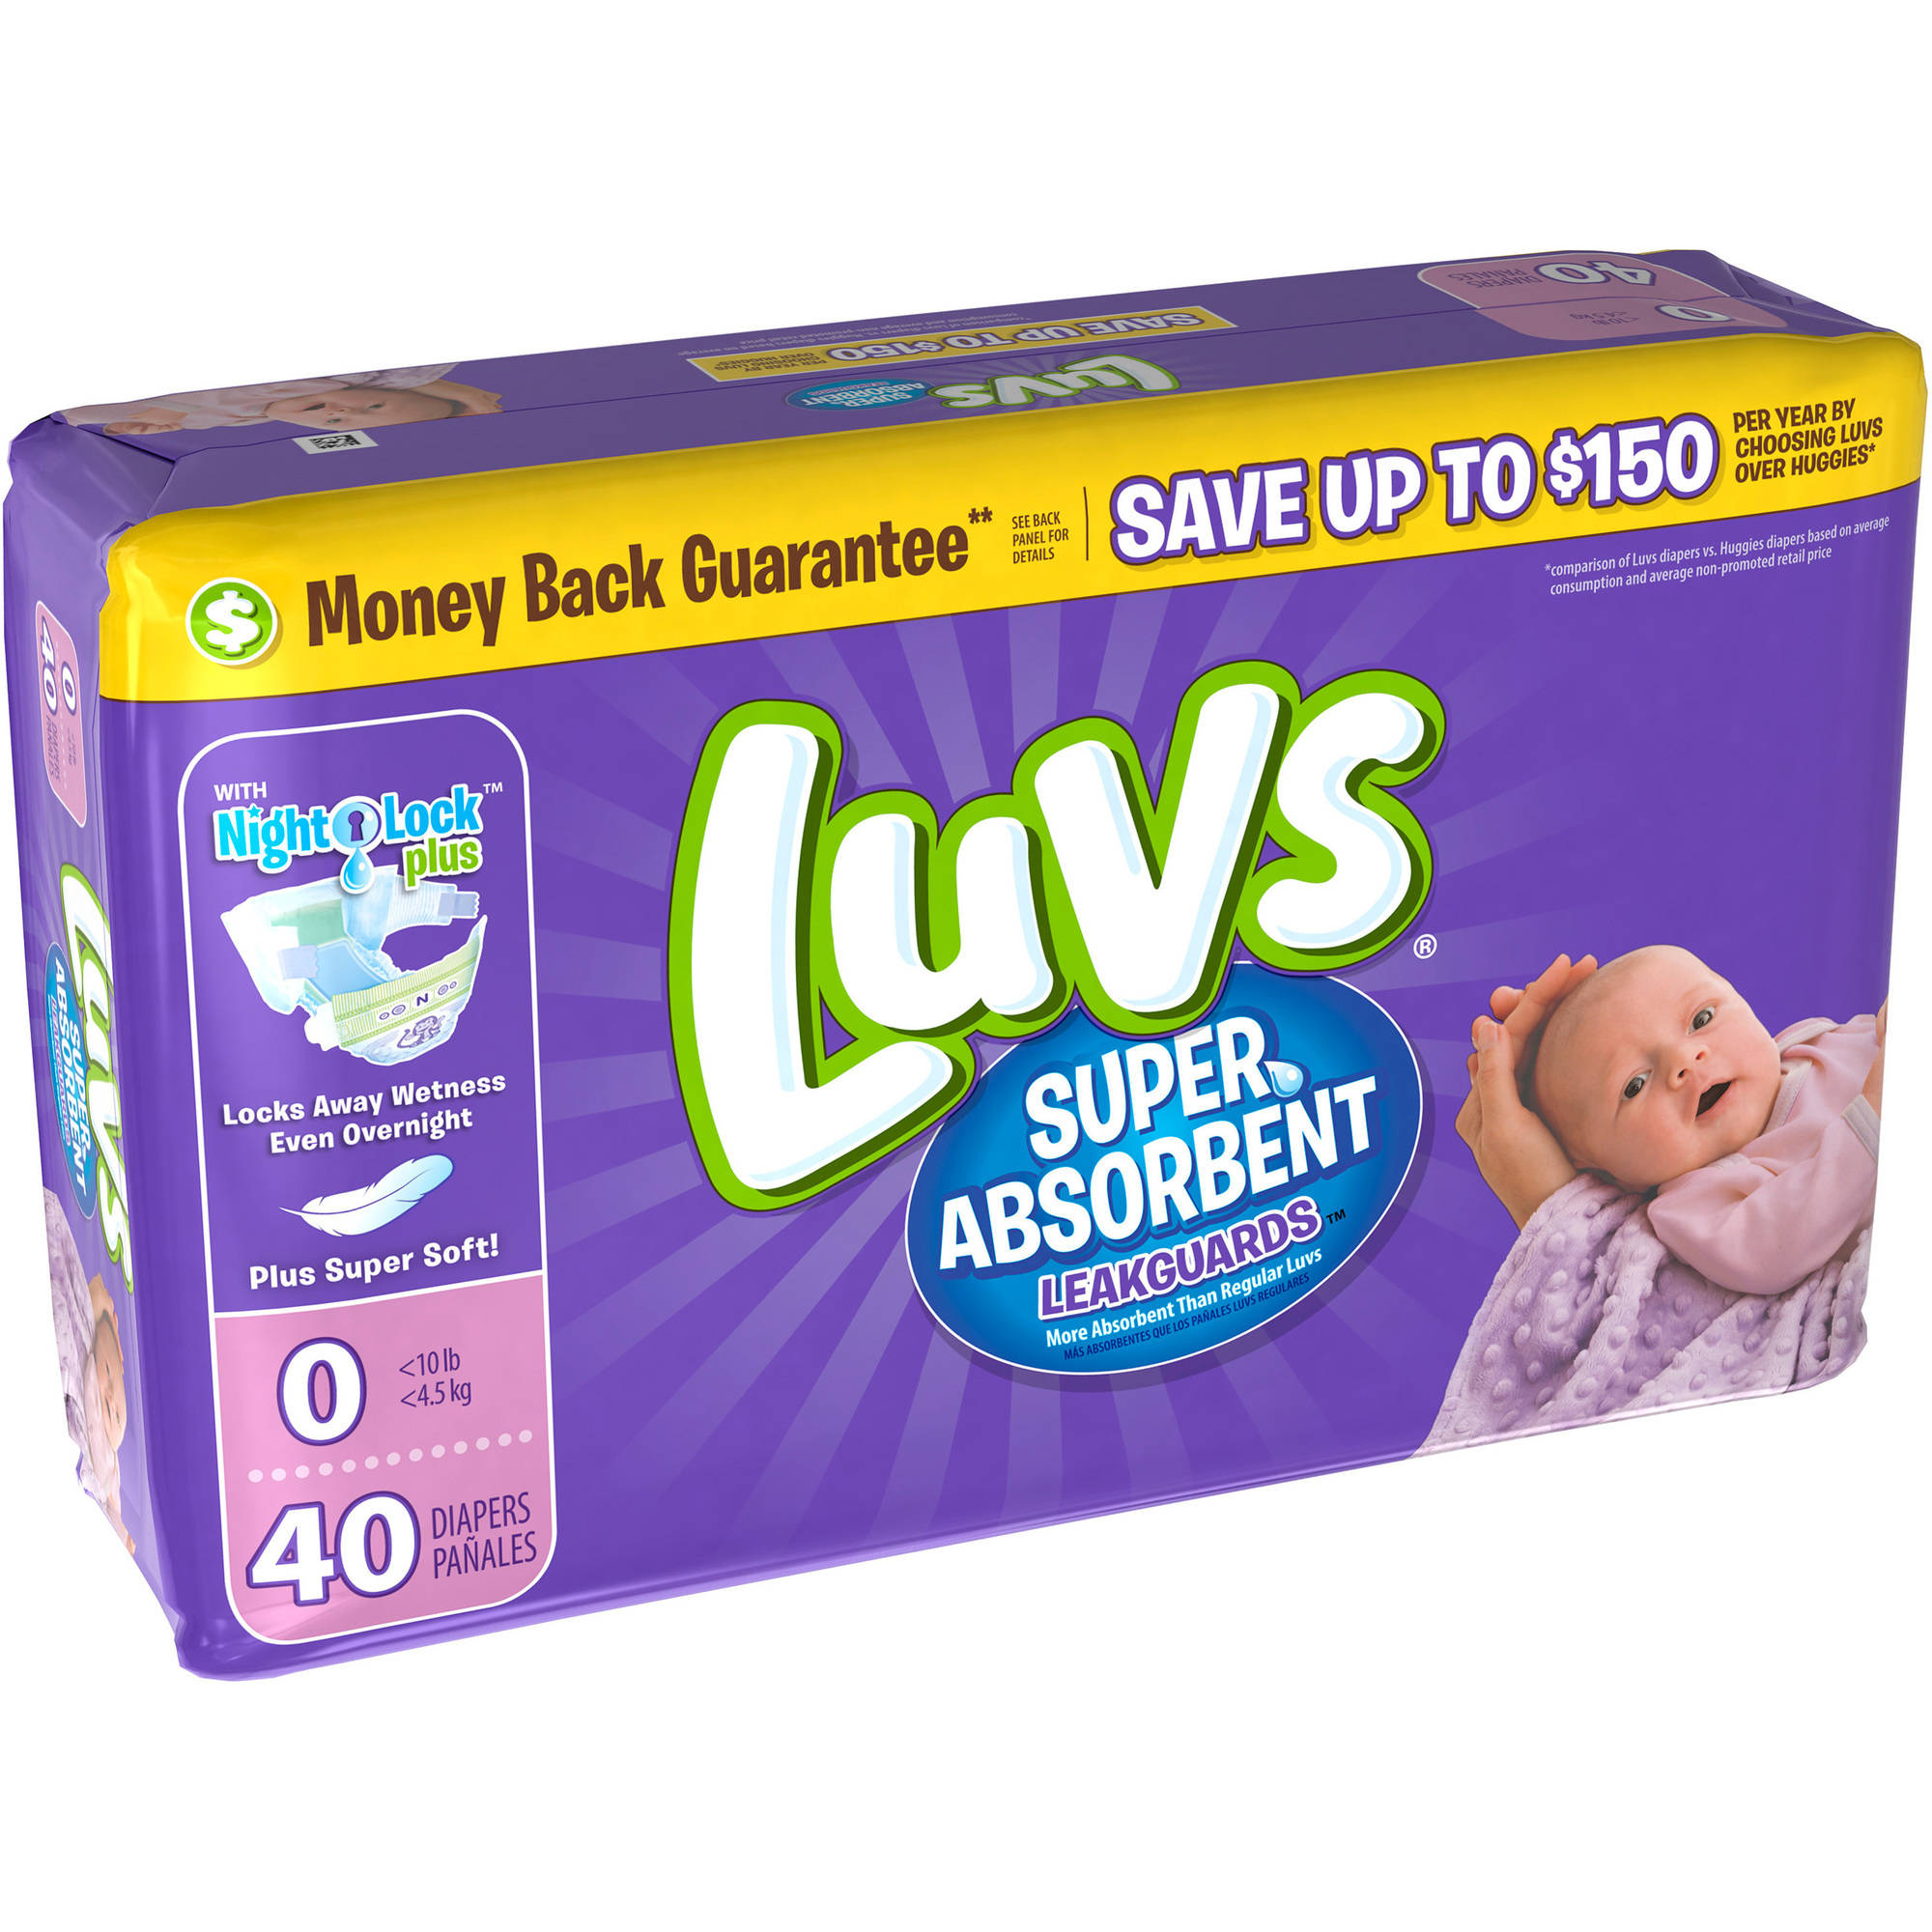 Luvs Super Absorbent Leakguards Diapers, Size Newborn, 40 Diapers